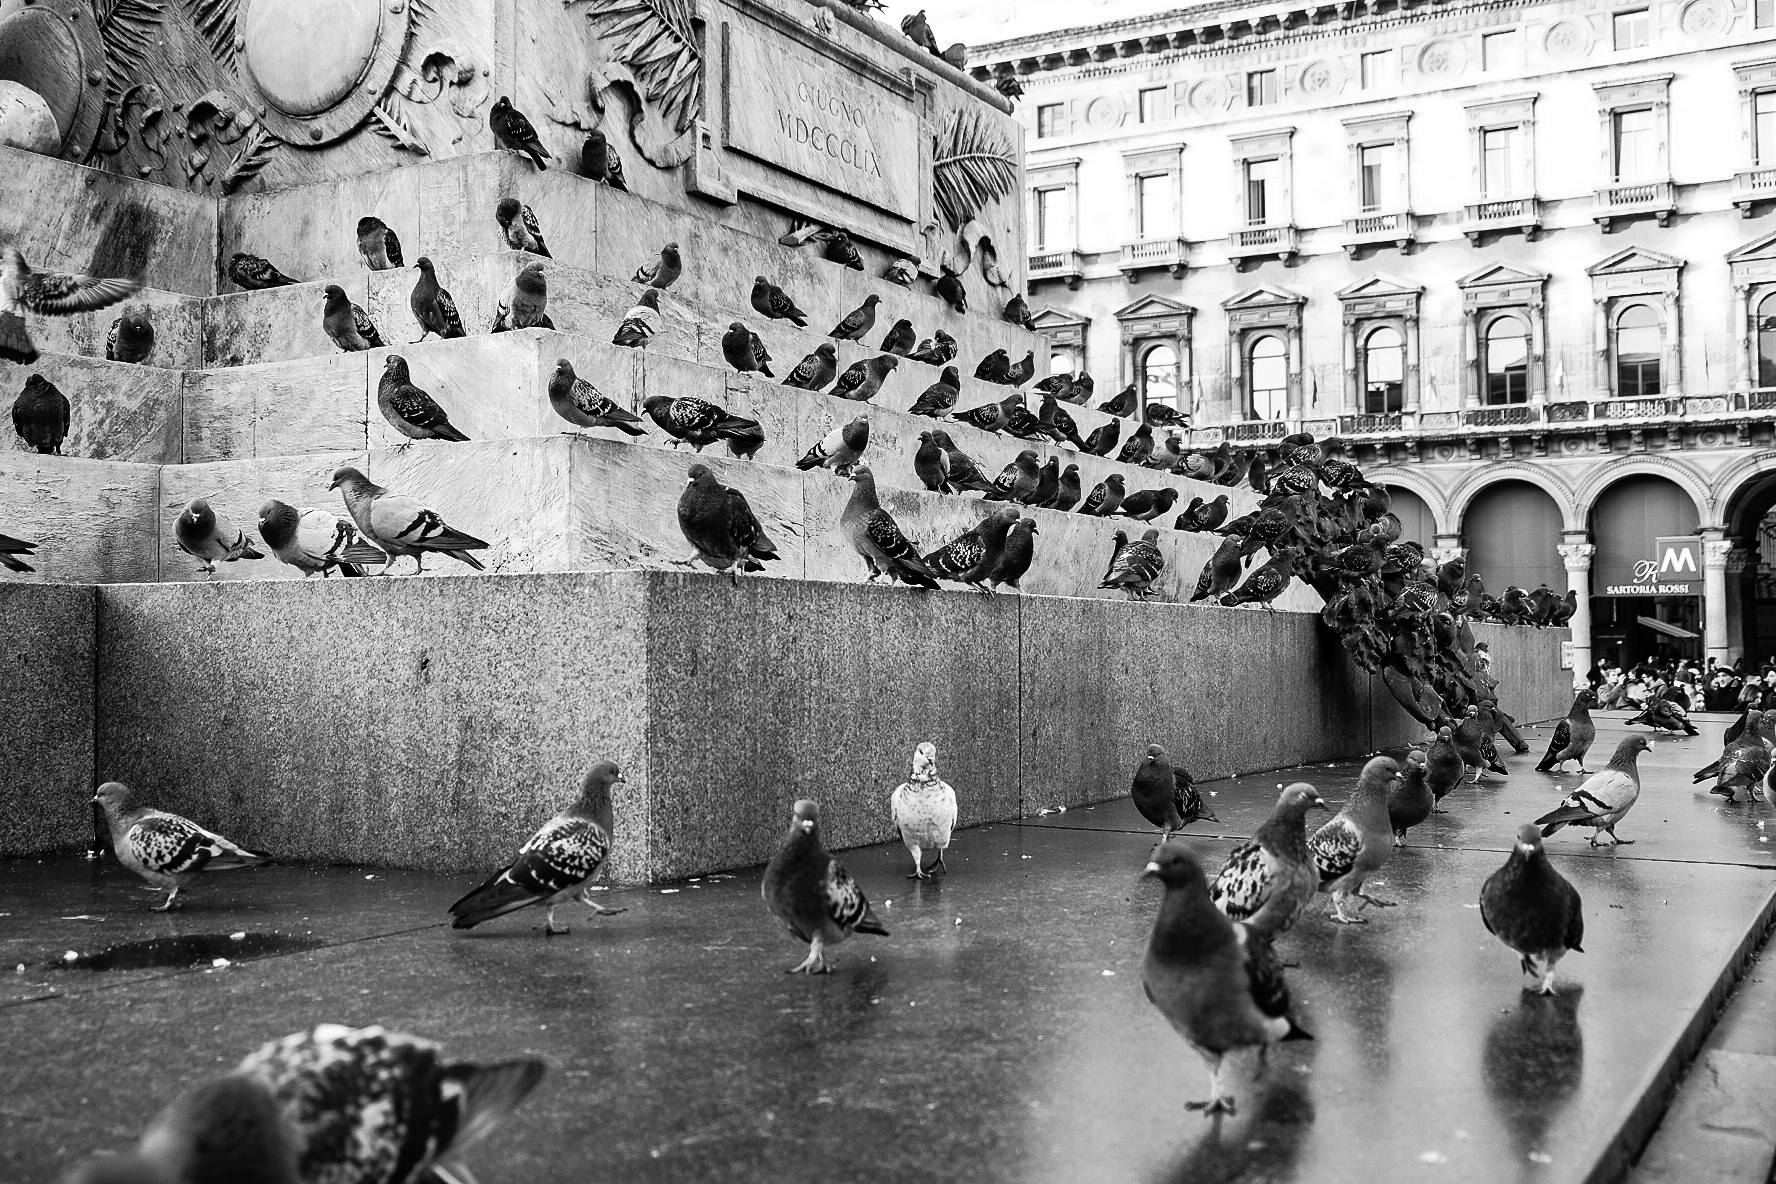 pigeons in the square ......